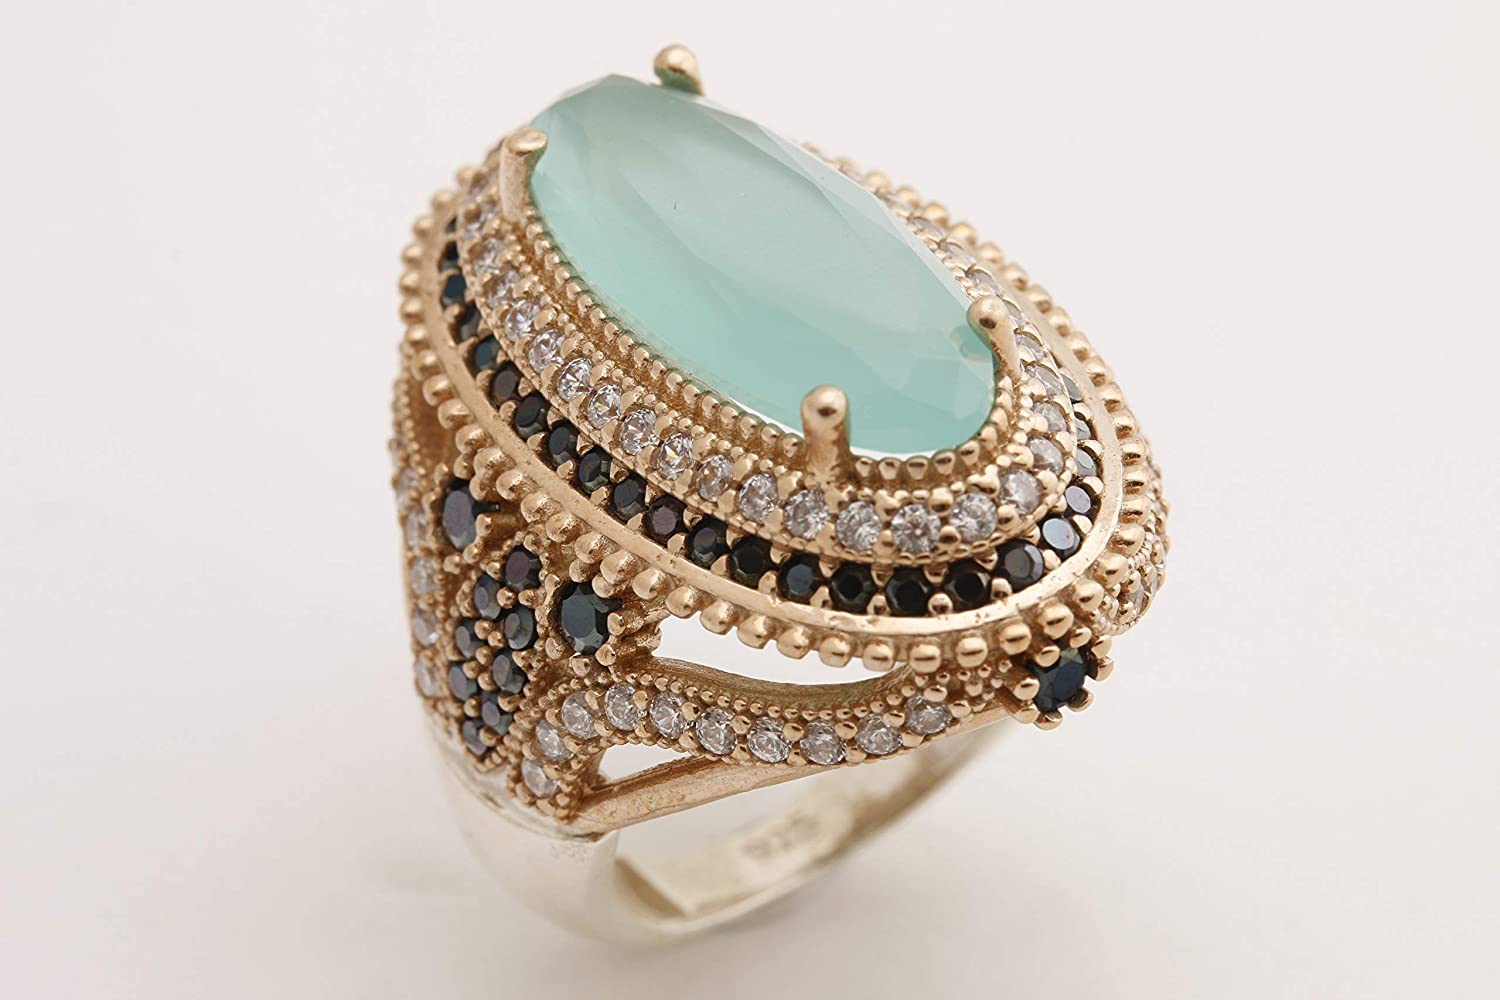 Turkish Handmade Jewelry Long Oval Shape Aquamarine and Round Cut Black Onyx Topaz 925 Sterling Silver Ring Size All Option